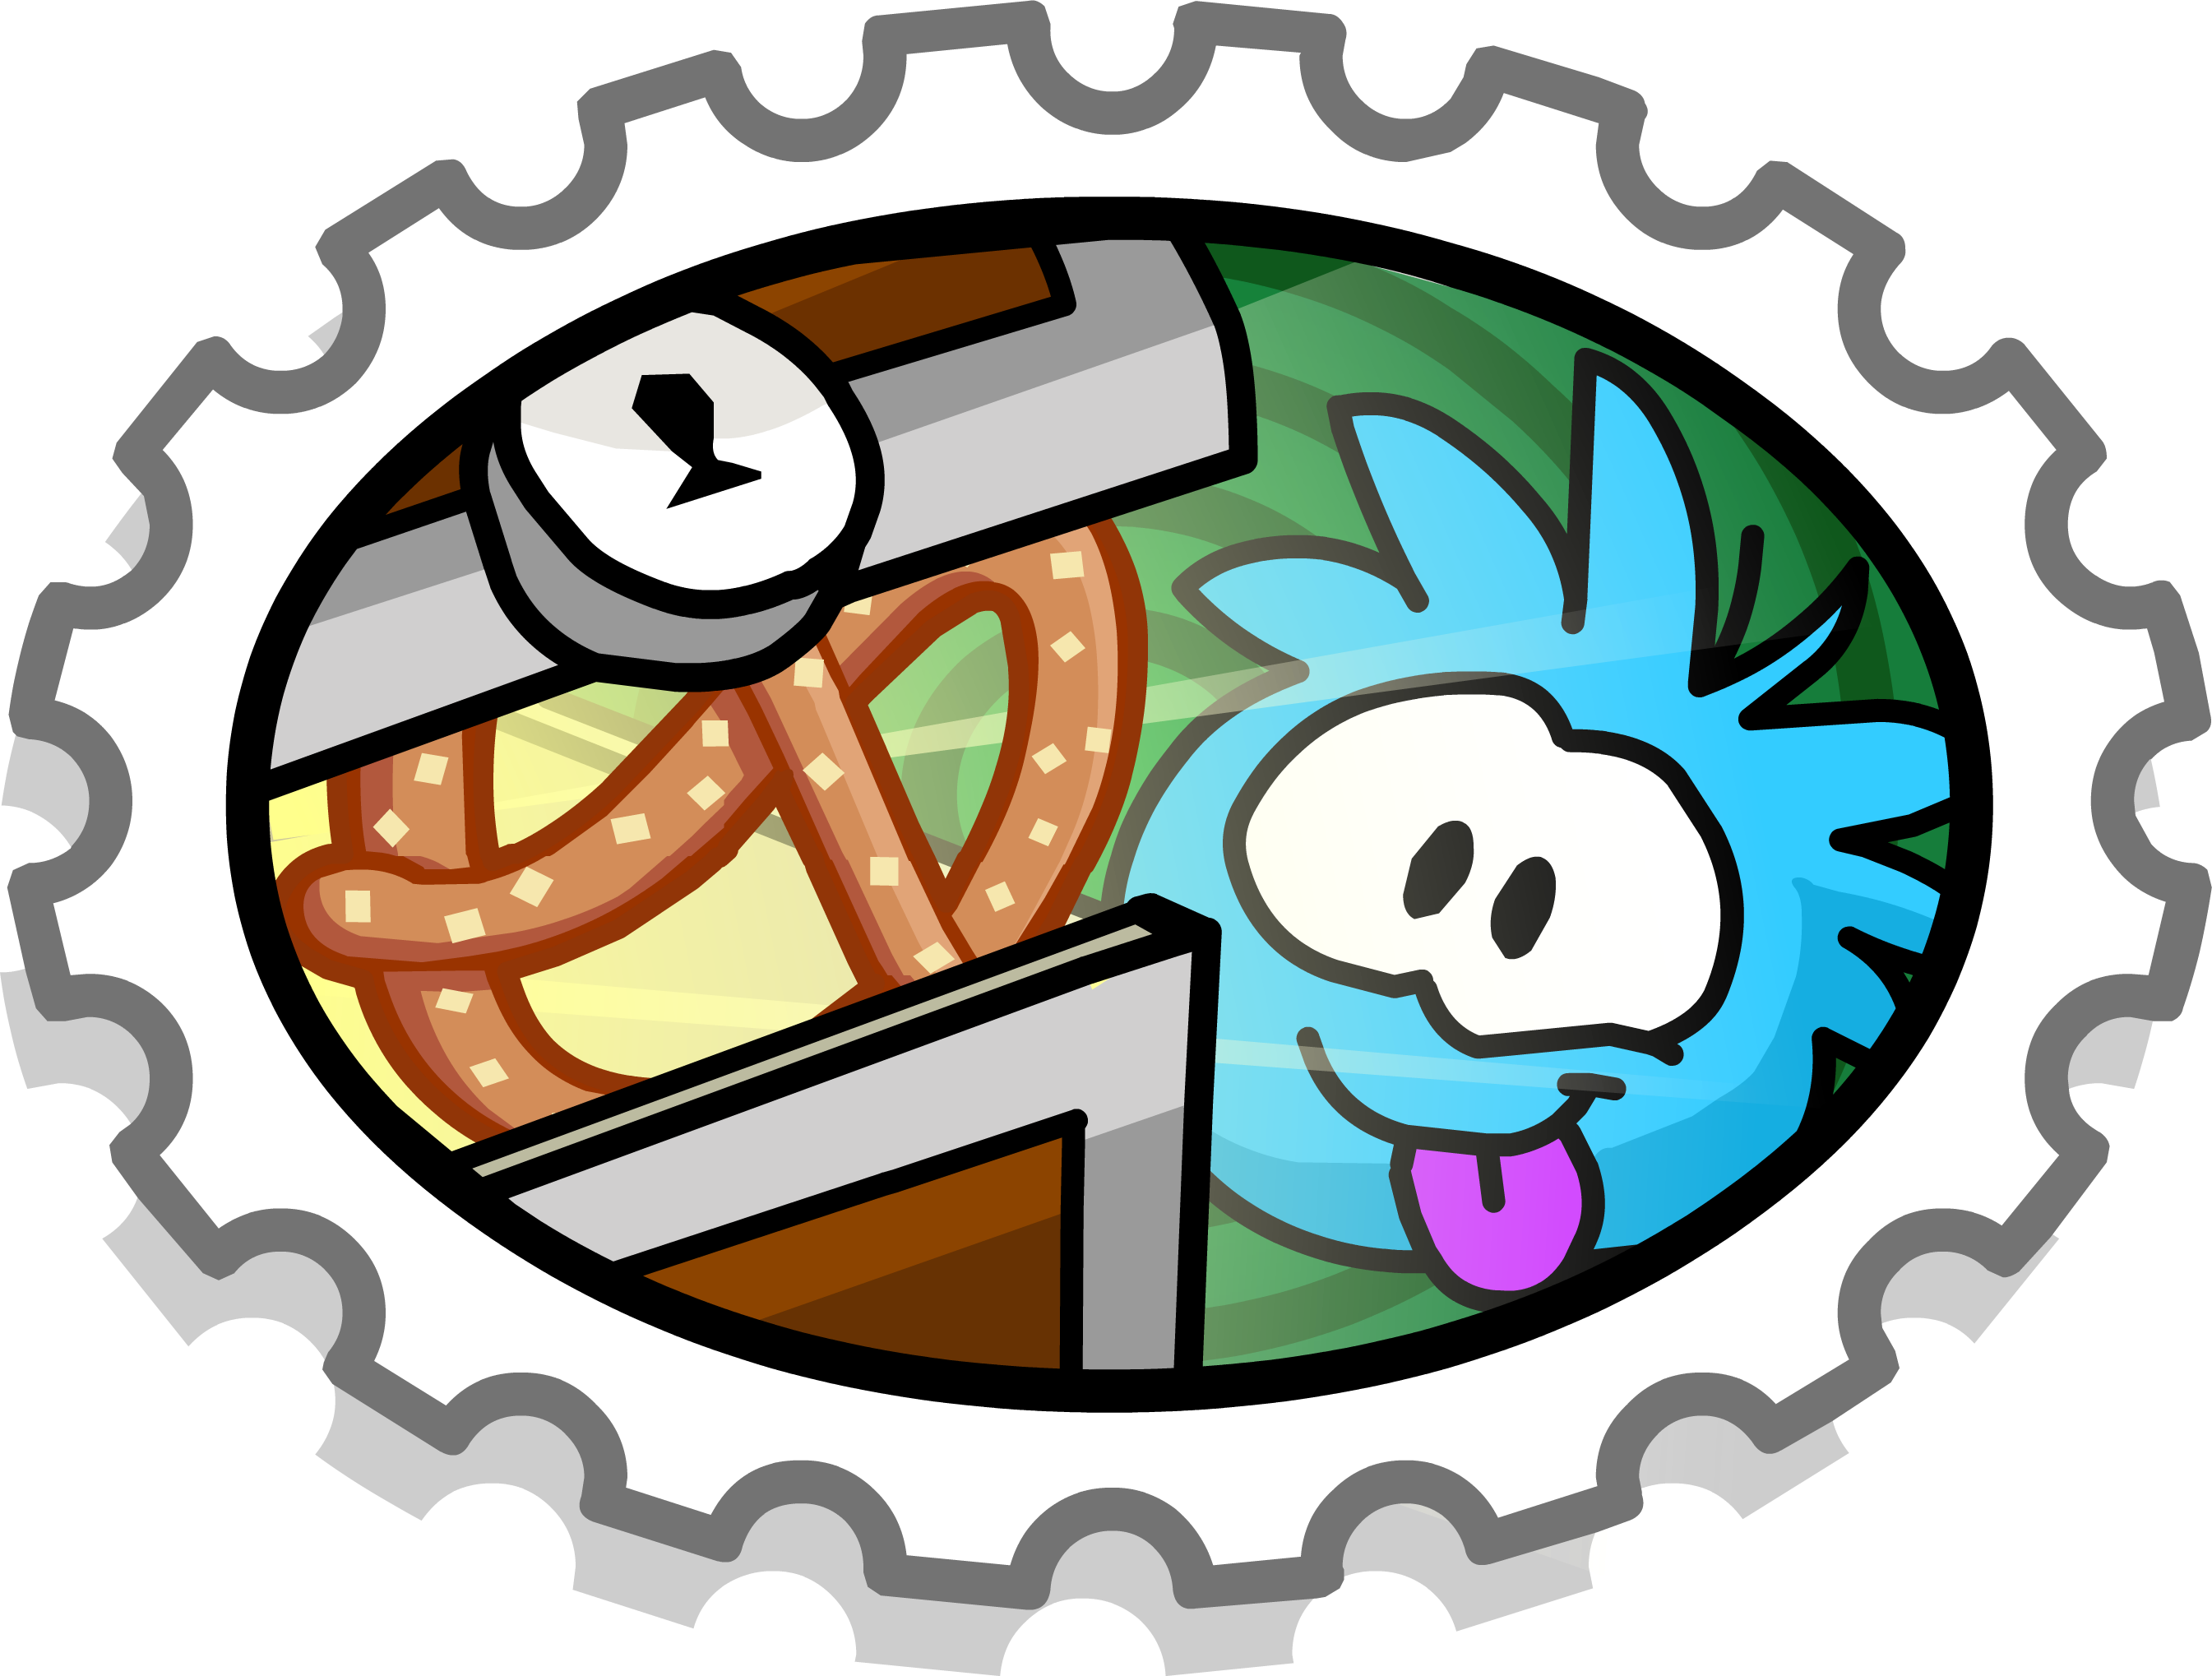 Puffle digging club penguin. Hole clipart dug hole